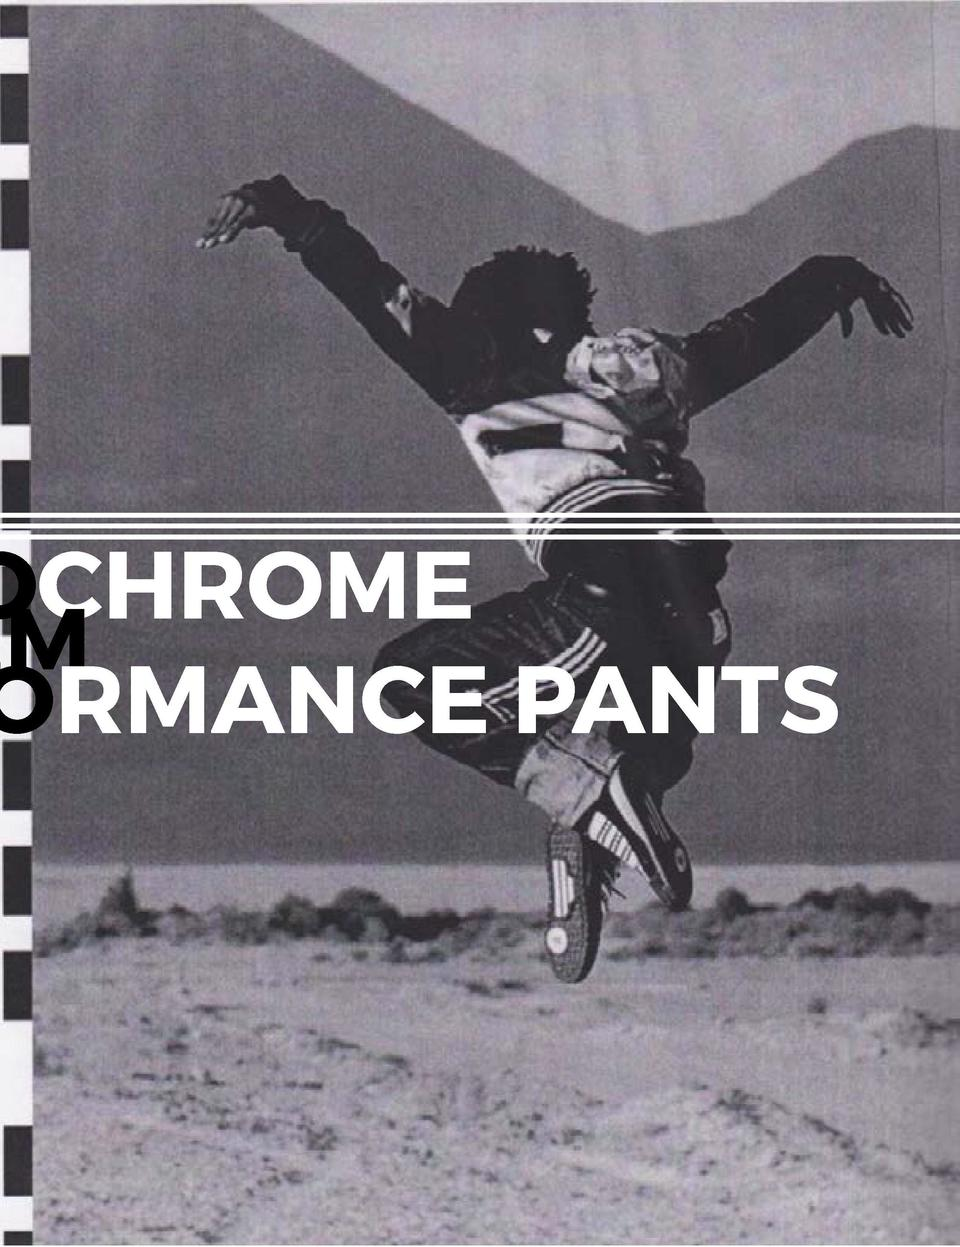 THE MONOCHROME HAREM PERFORMANCE PANTS       118